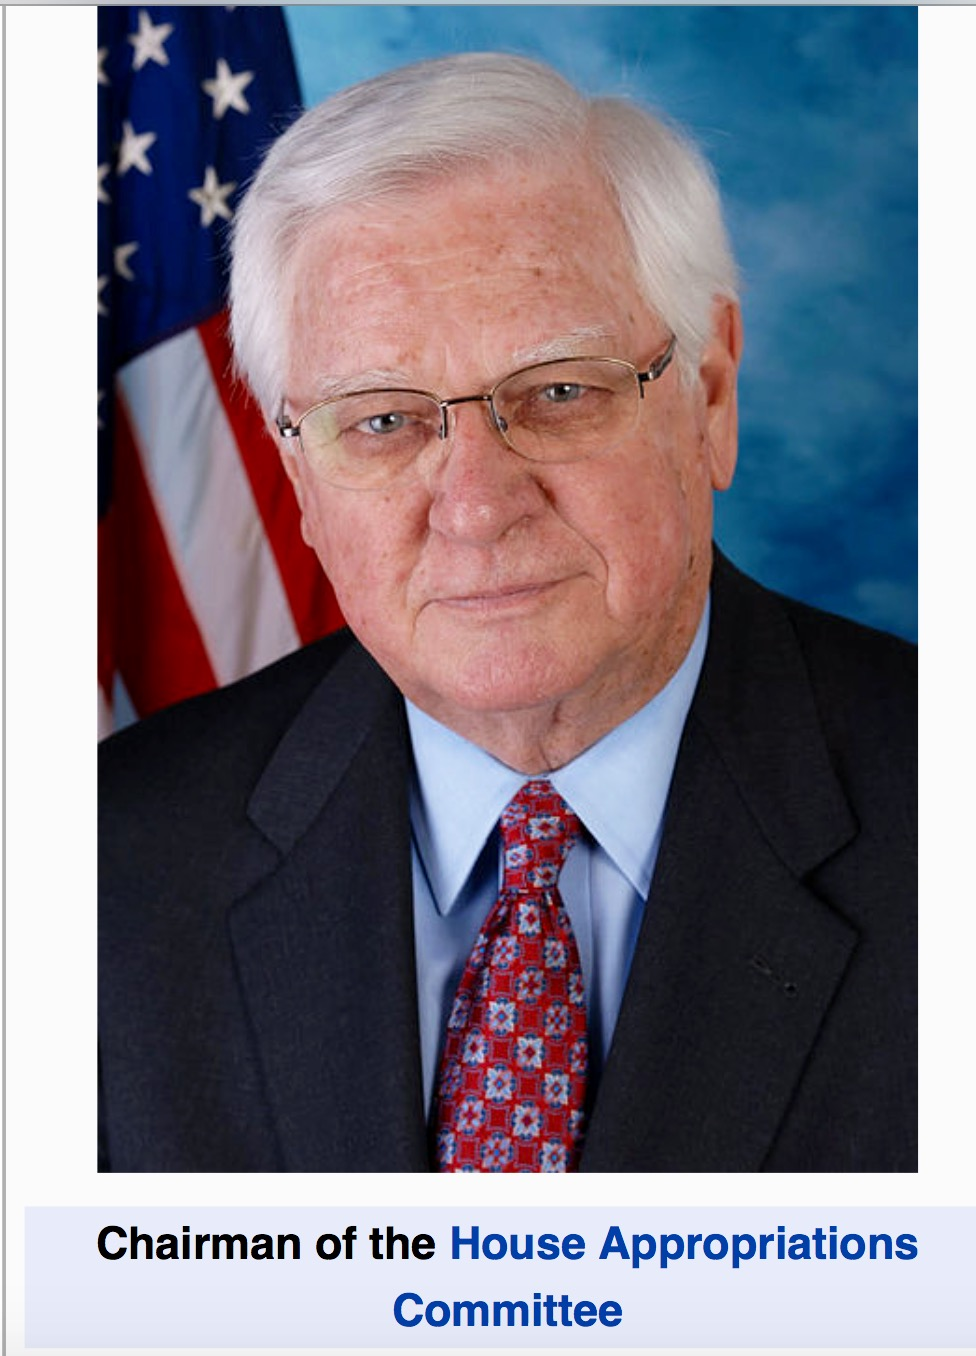 House Appropriations Committee Chairman Rep. Hal Rogers (R-KY)